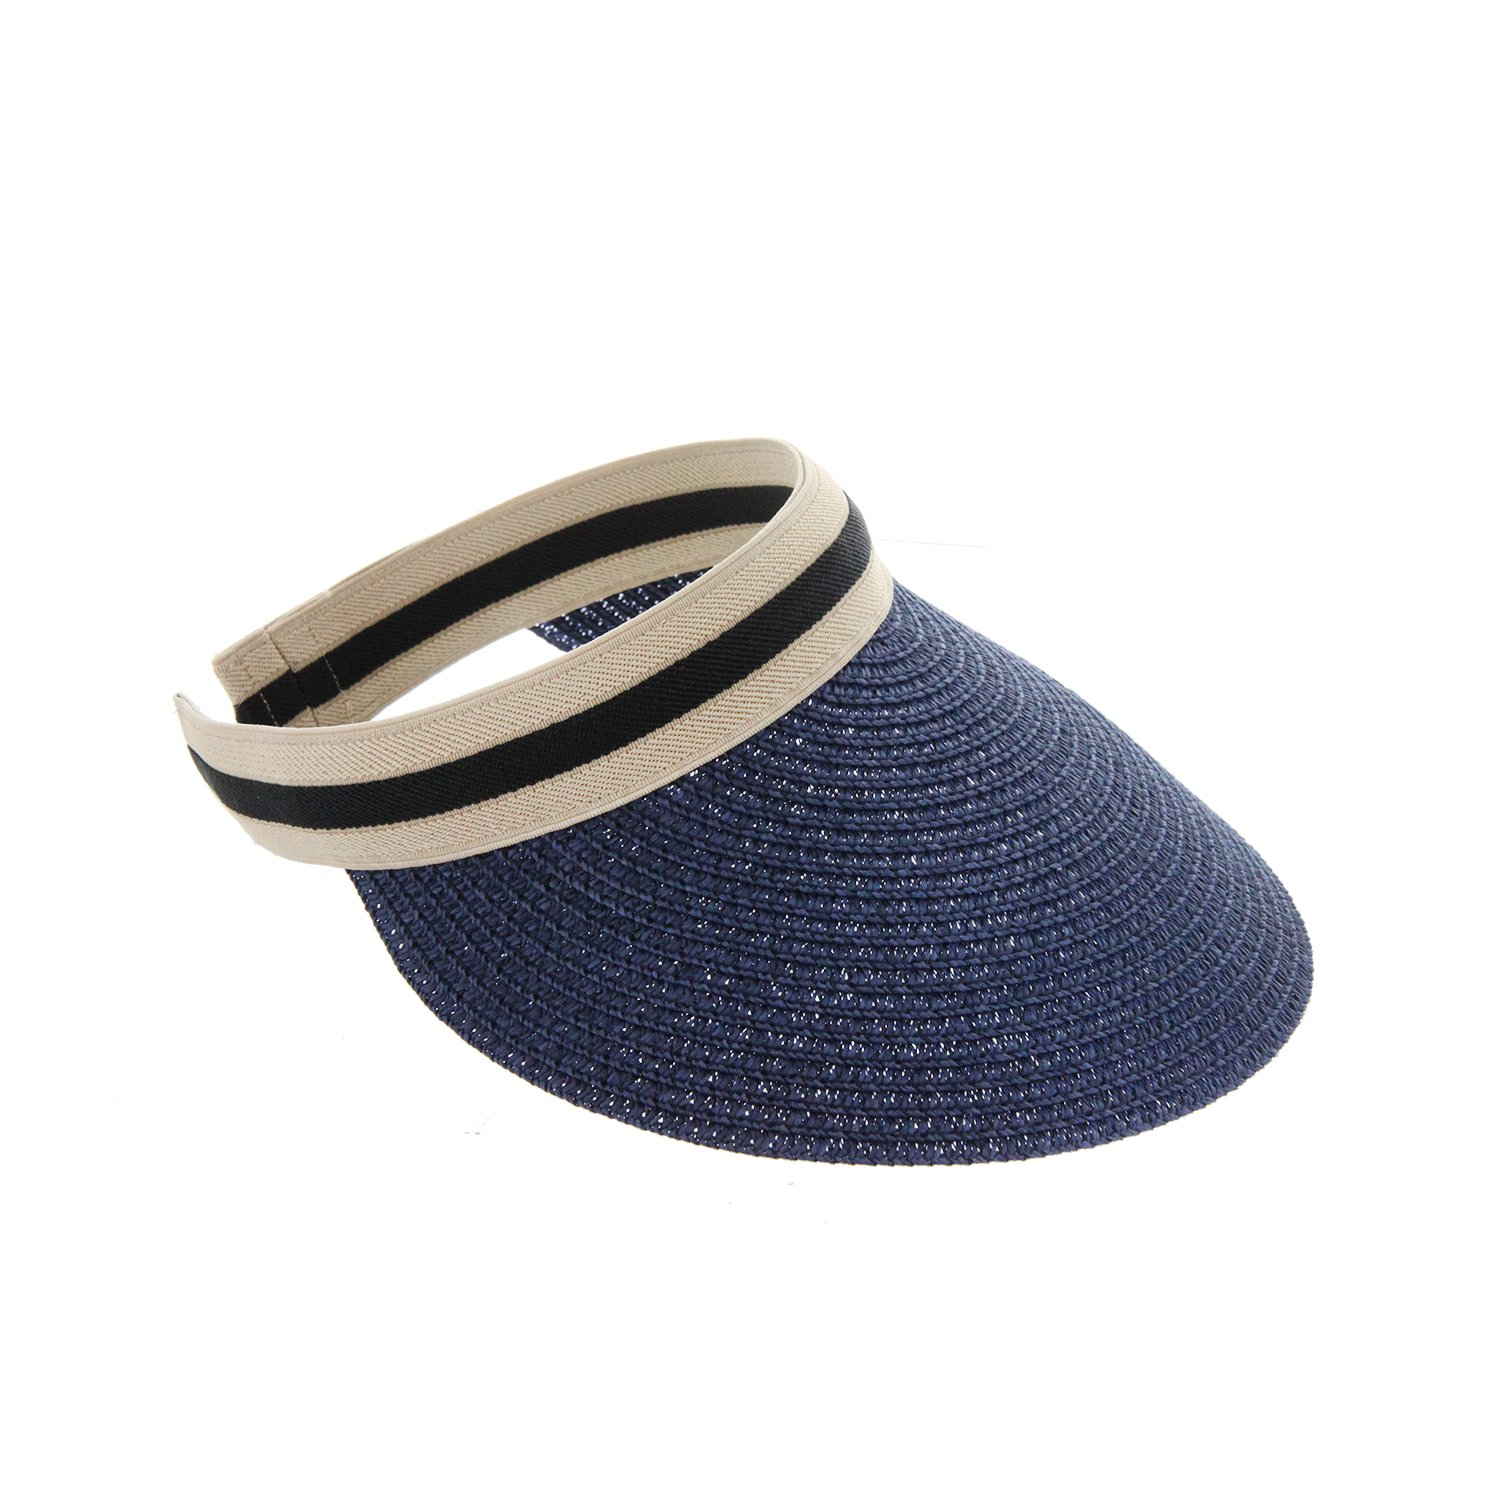 Colorful UV Sun Protecting Visor Adjustable Clip on Beach Hat for Ladies and Women Outdoor Sport Cap Braided Design in Navy